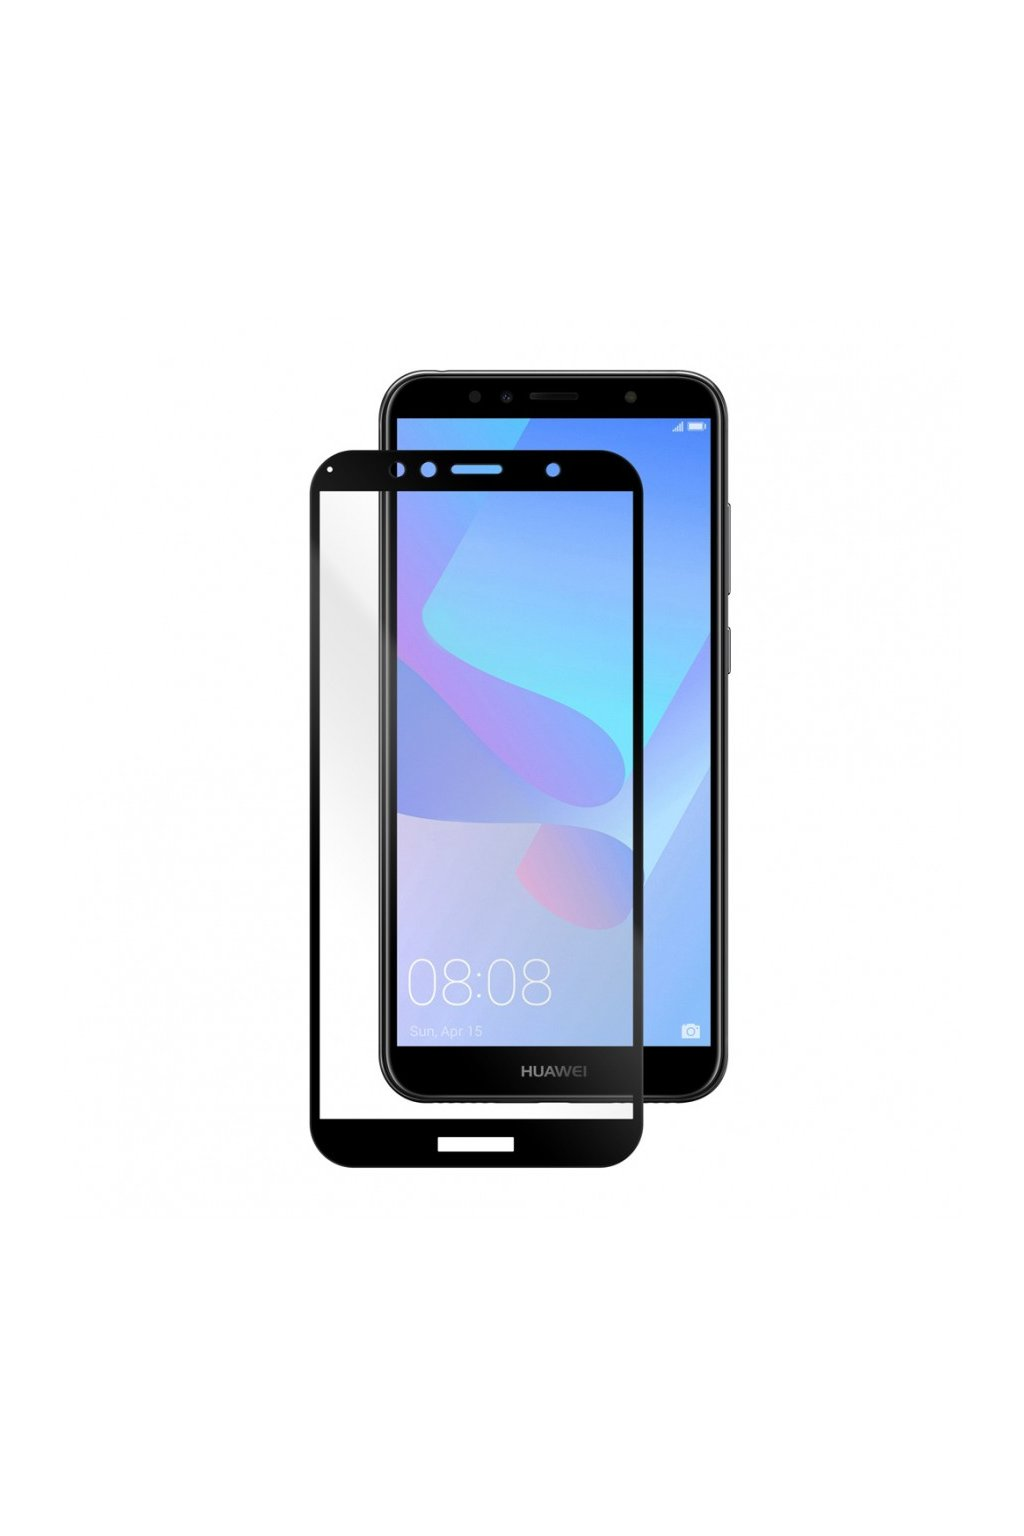 gallery 44175 1205909 view Huawei Y6 2018 Y6 Prime 2018 Honor 7A Full Frame Tempered Glass Vetter GO Black